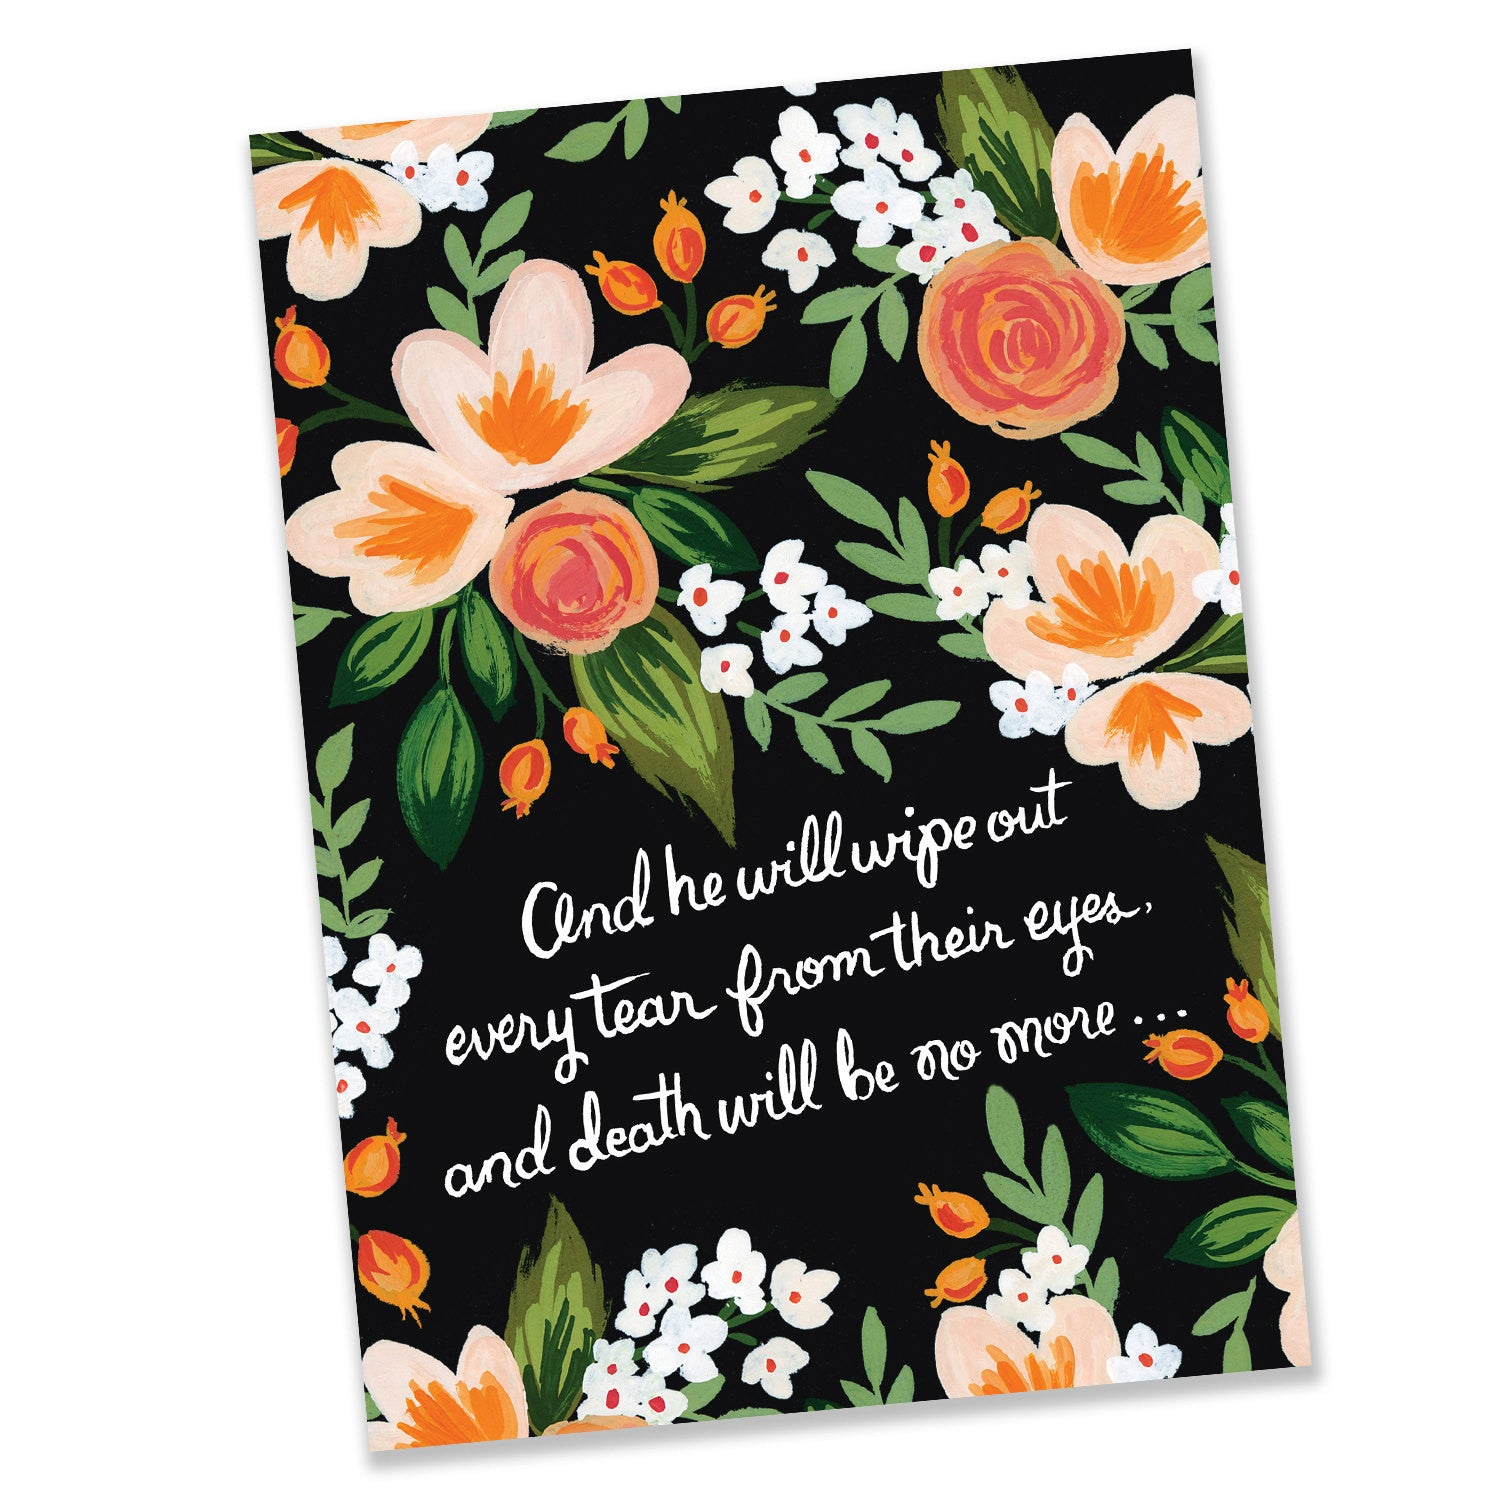 Revelation 214 Scripture Jw Greeting Card Seasoned With Salt Paperie